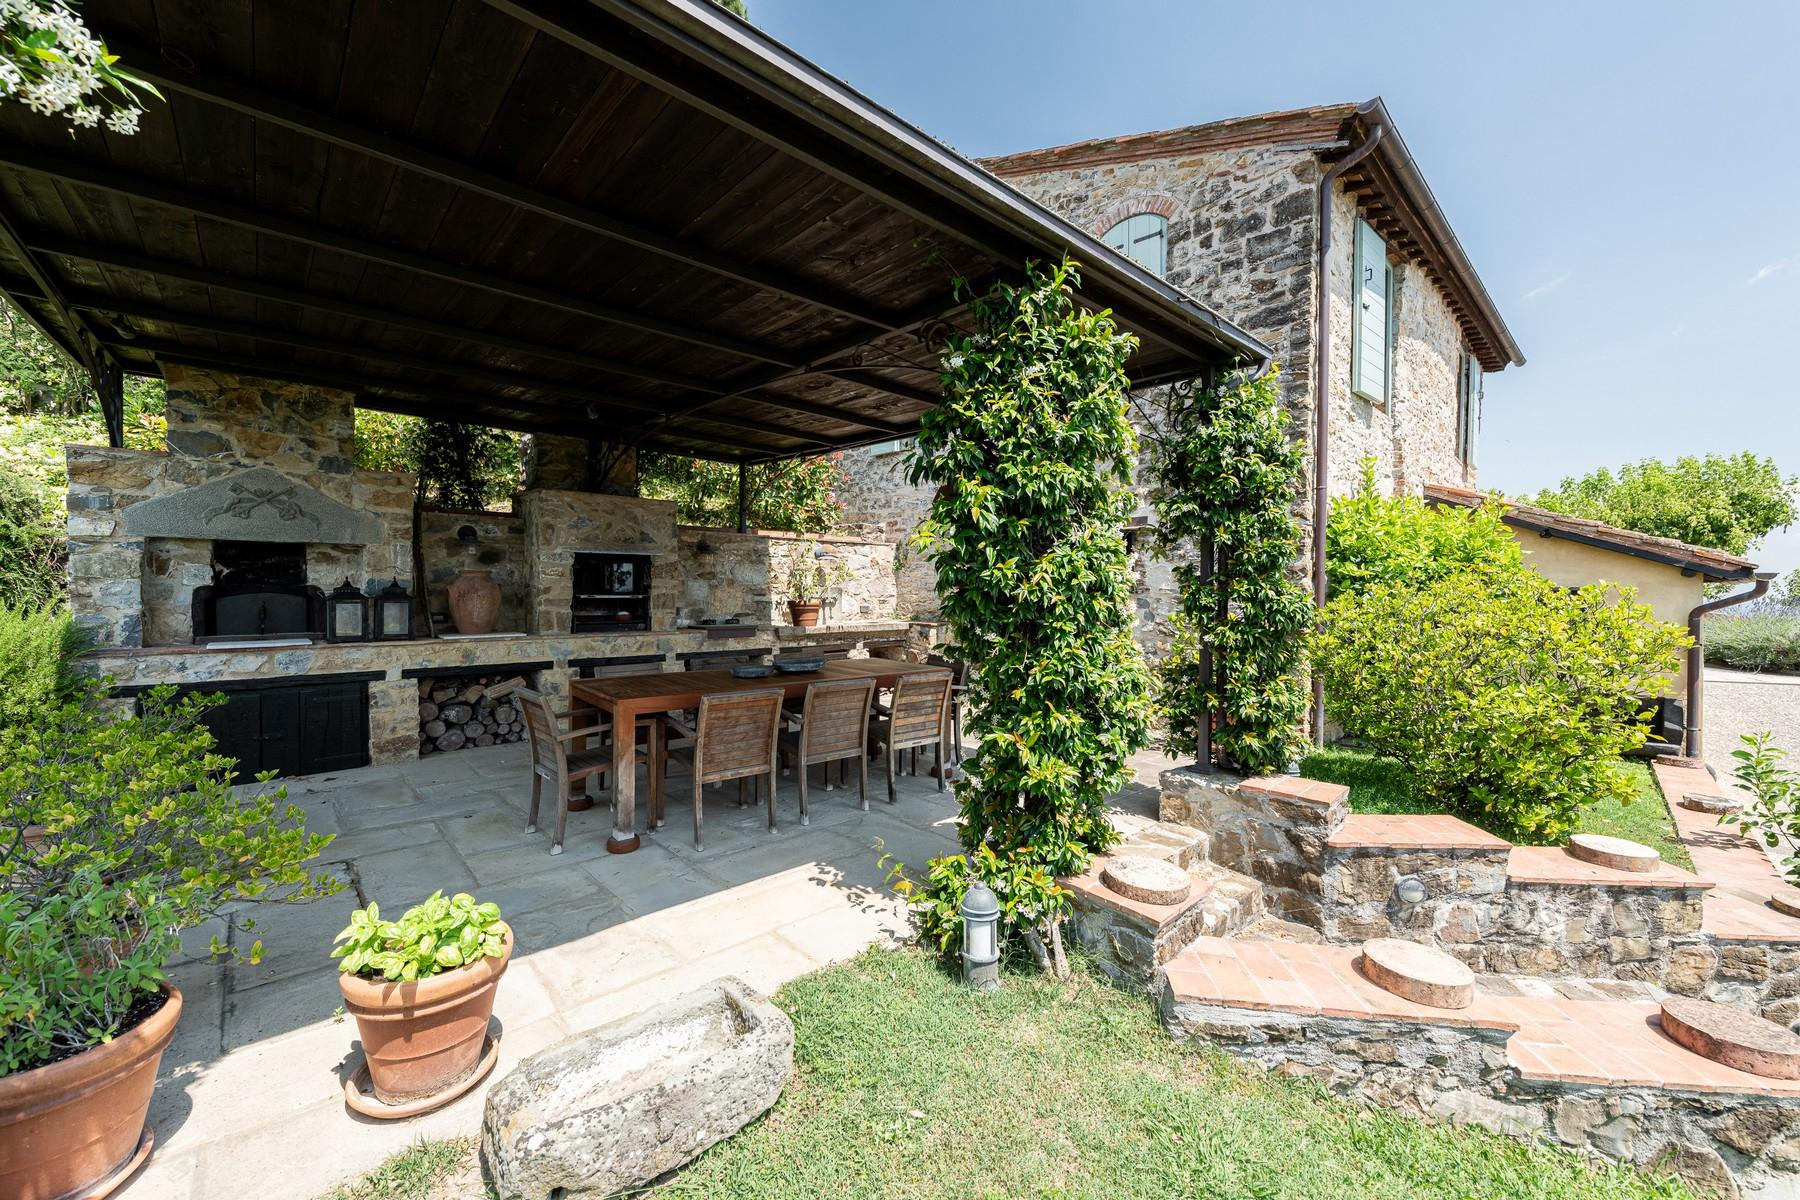 Magical farmhouse with stunning views on the hills of Lucca - 28